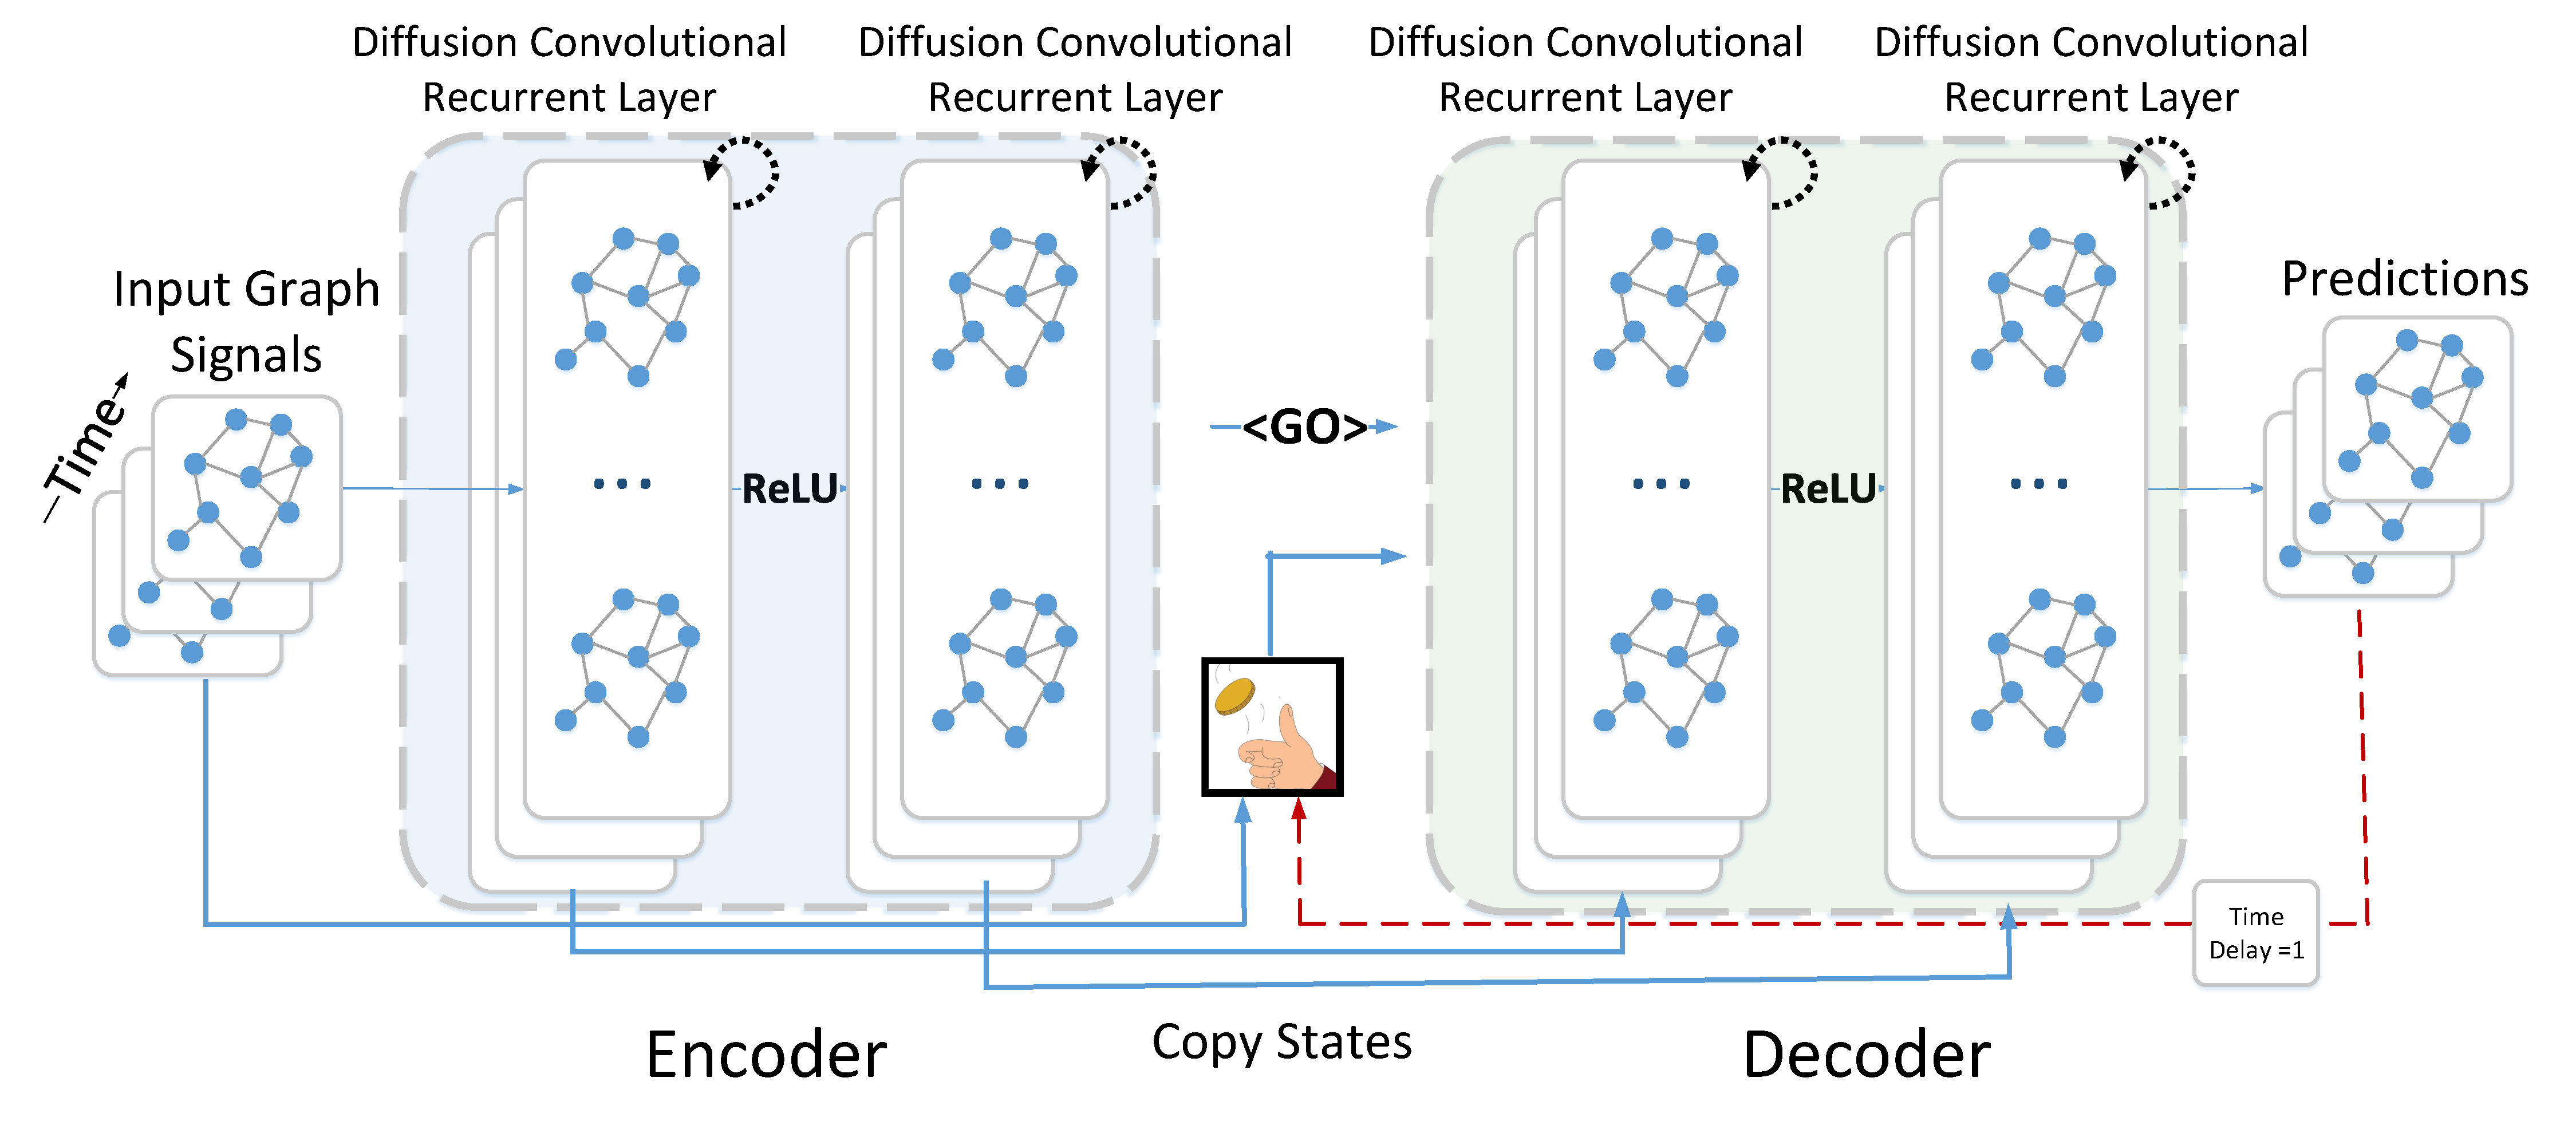 Diffusion Convolutional Recurrent Neural Network